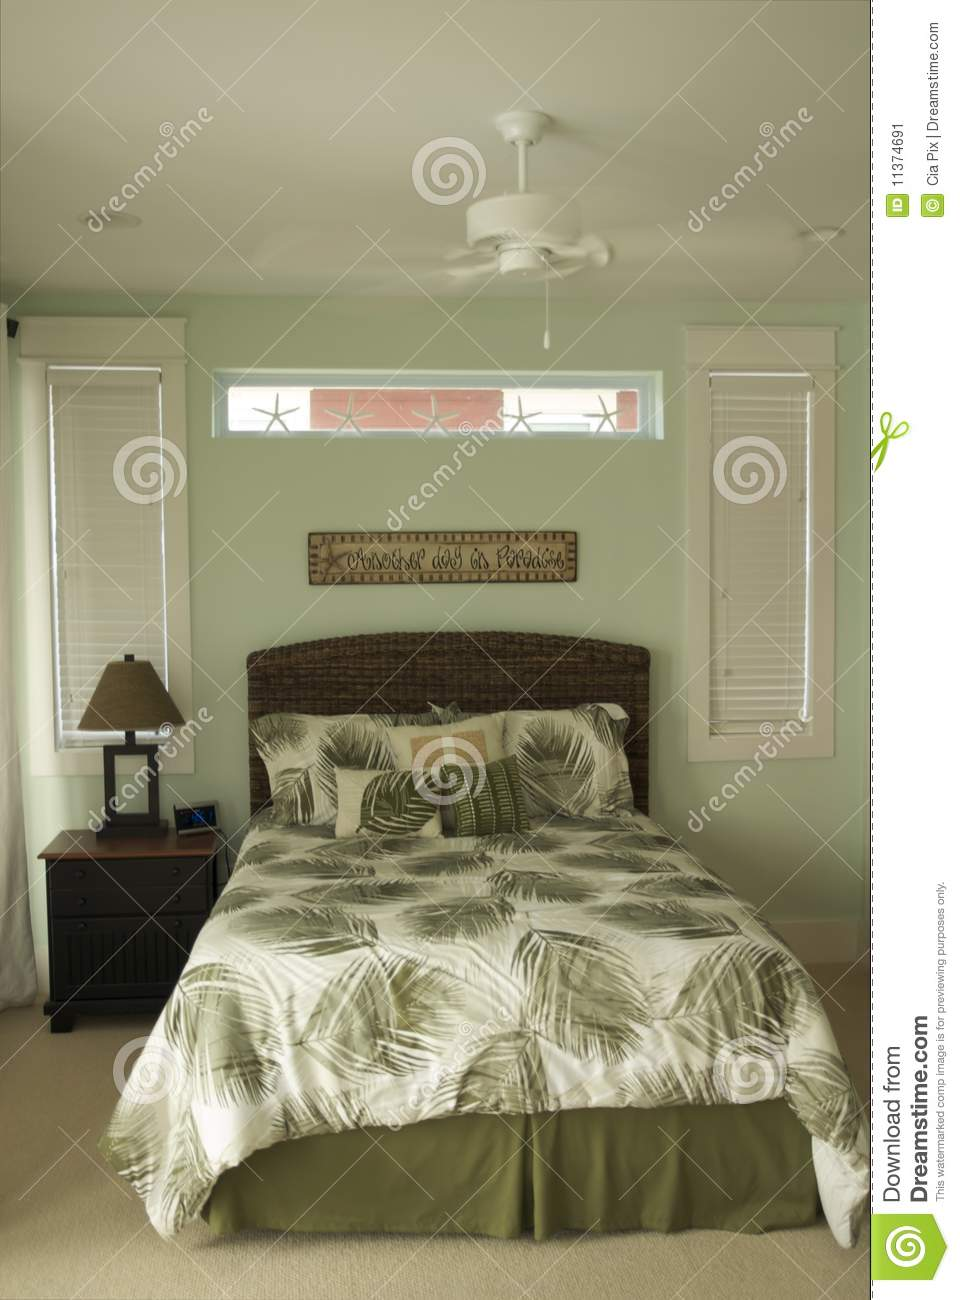 Chambre à Coucher Moderne Image stock - Image: 11374691